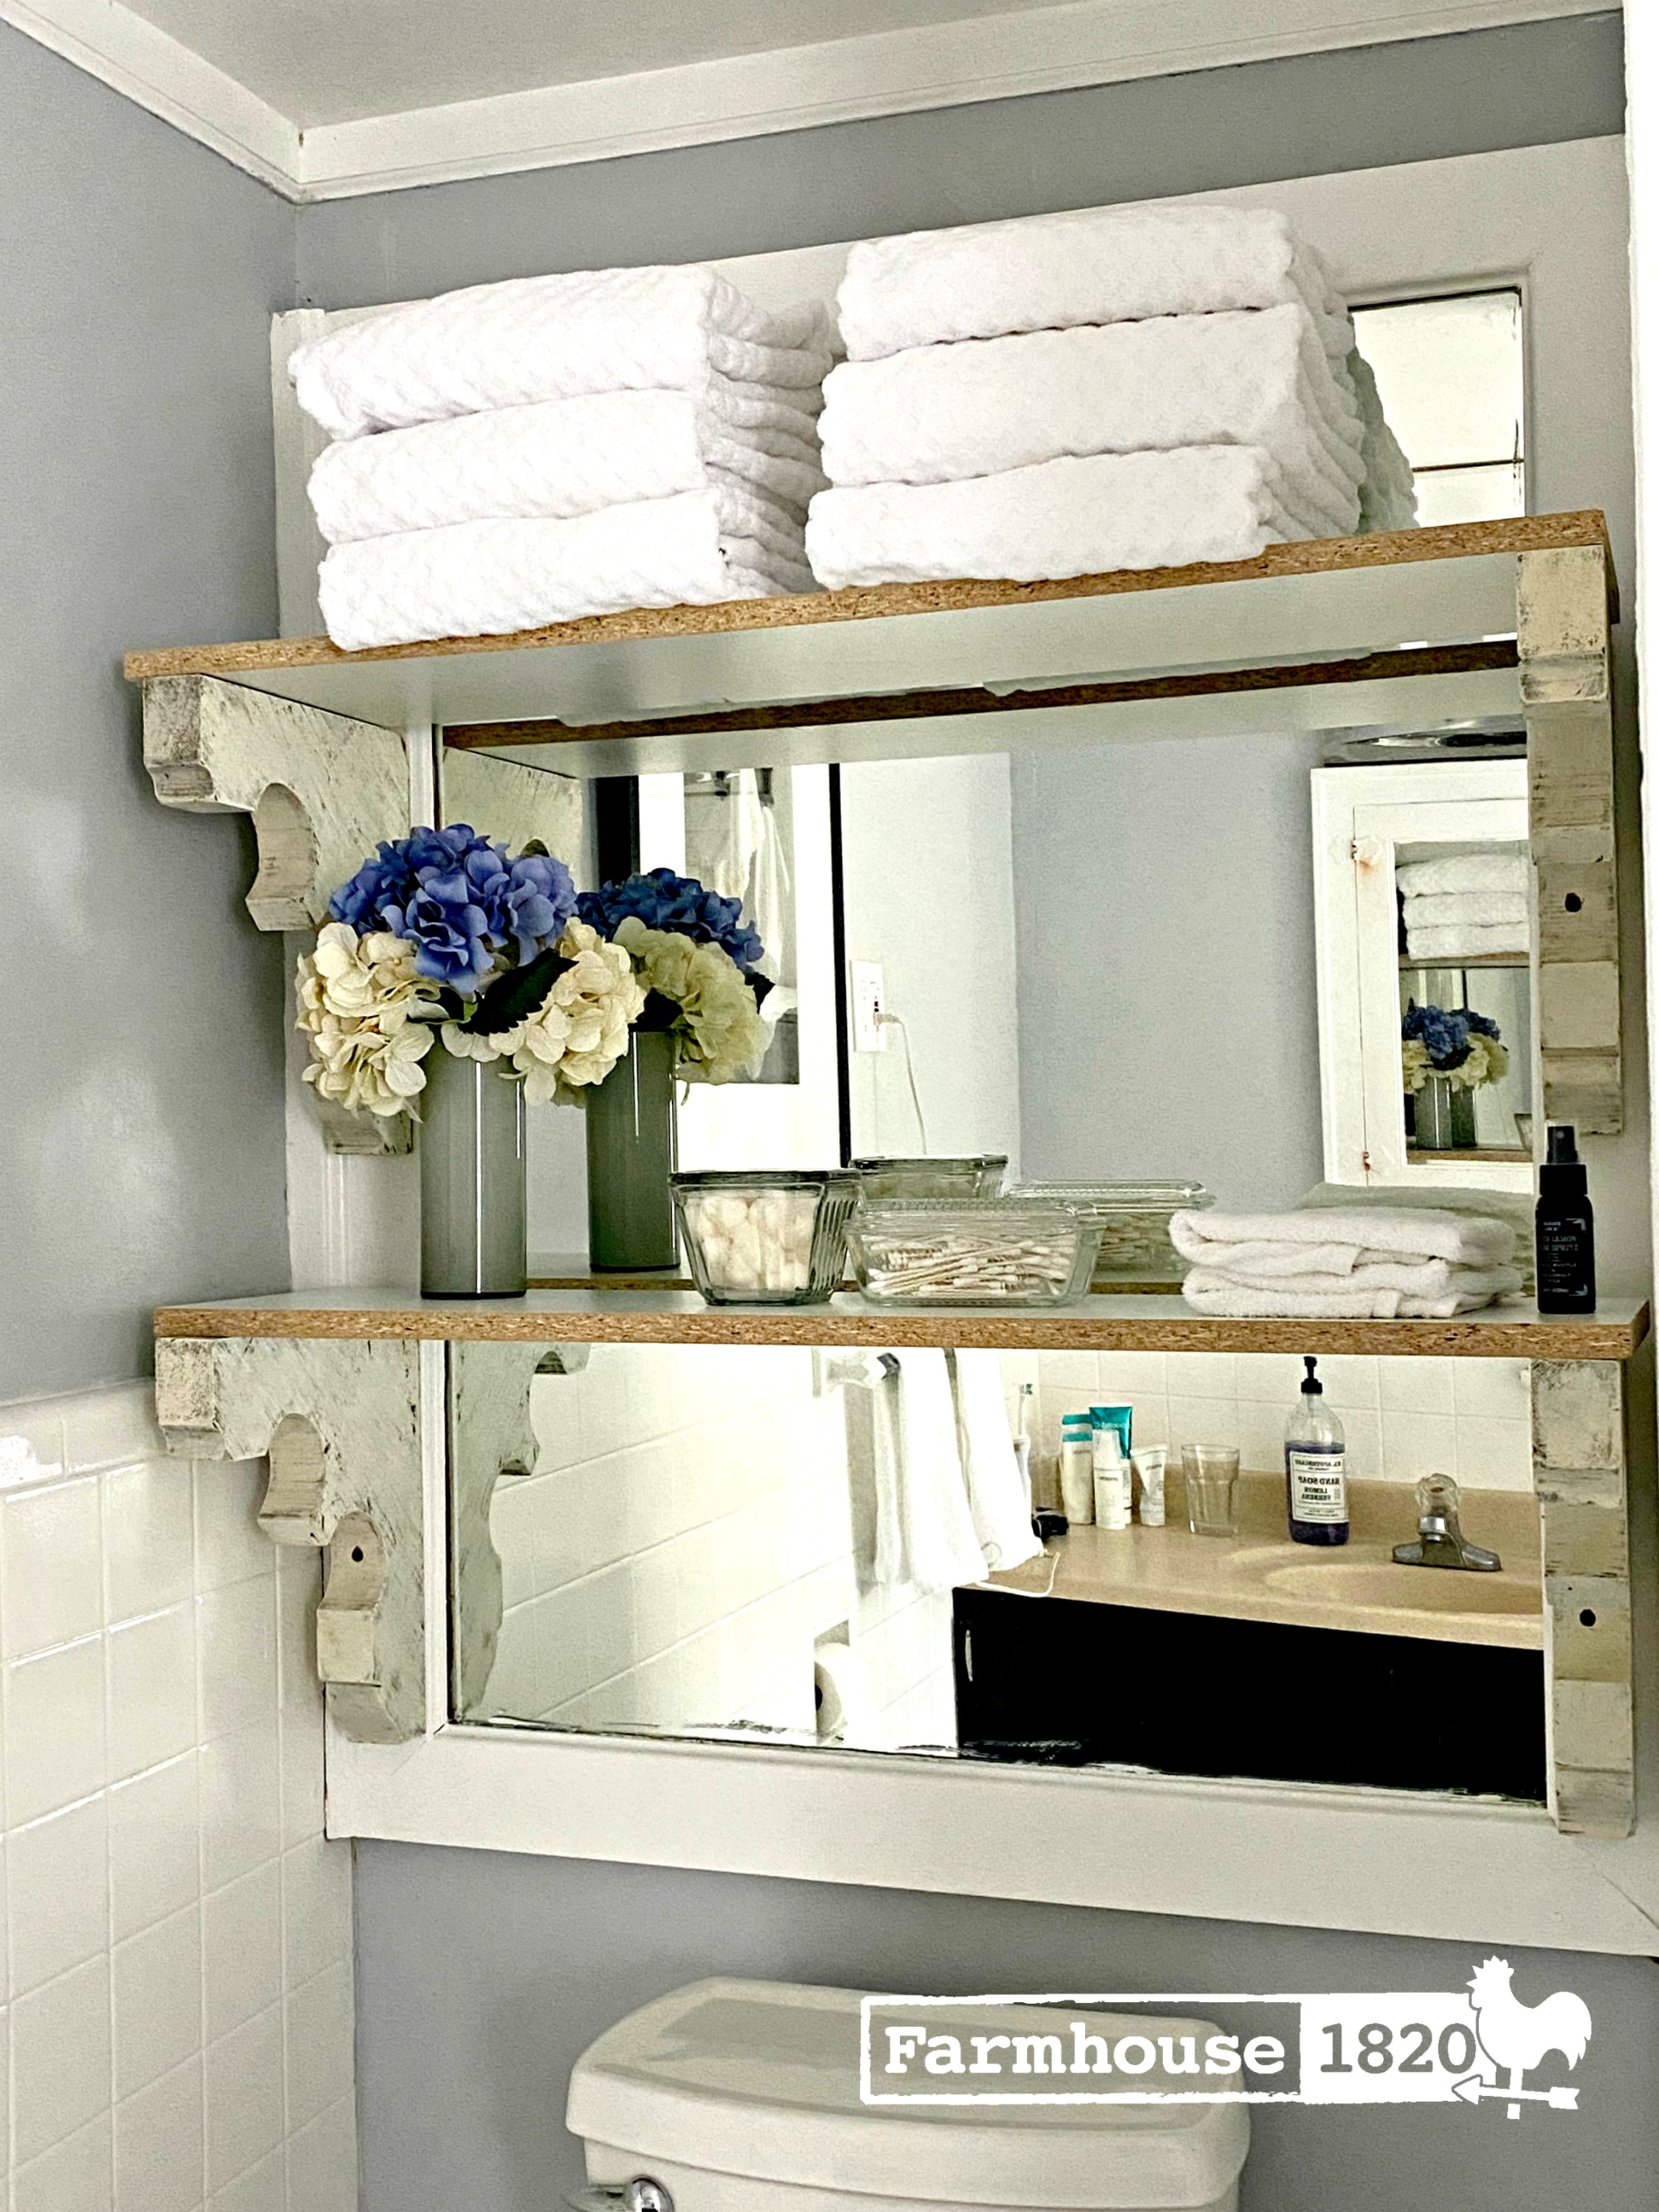 bathroom - storage shelves using vintage corbels and modern shelving